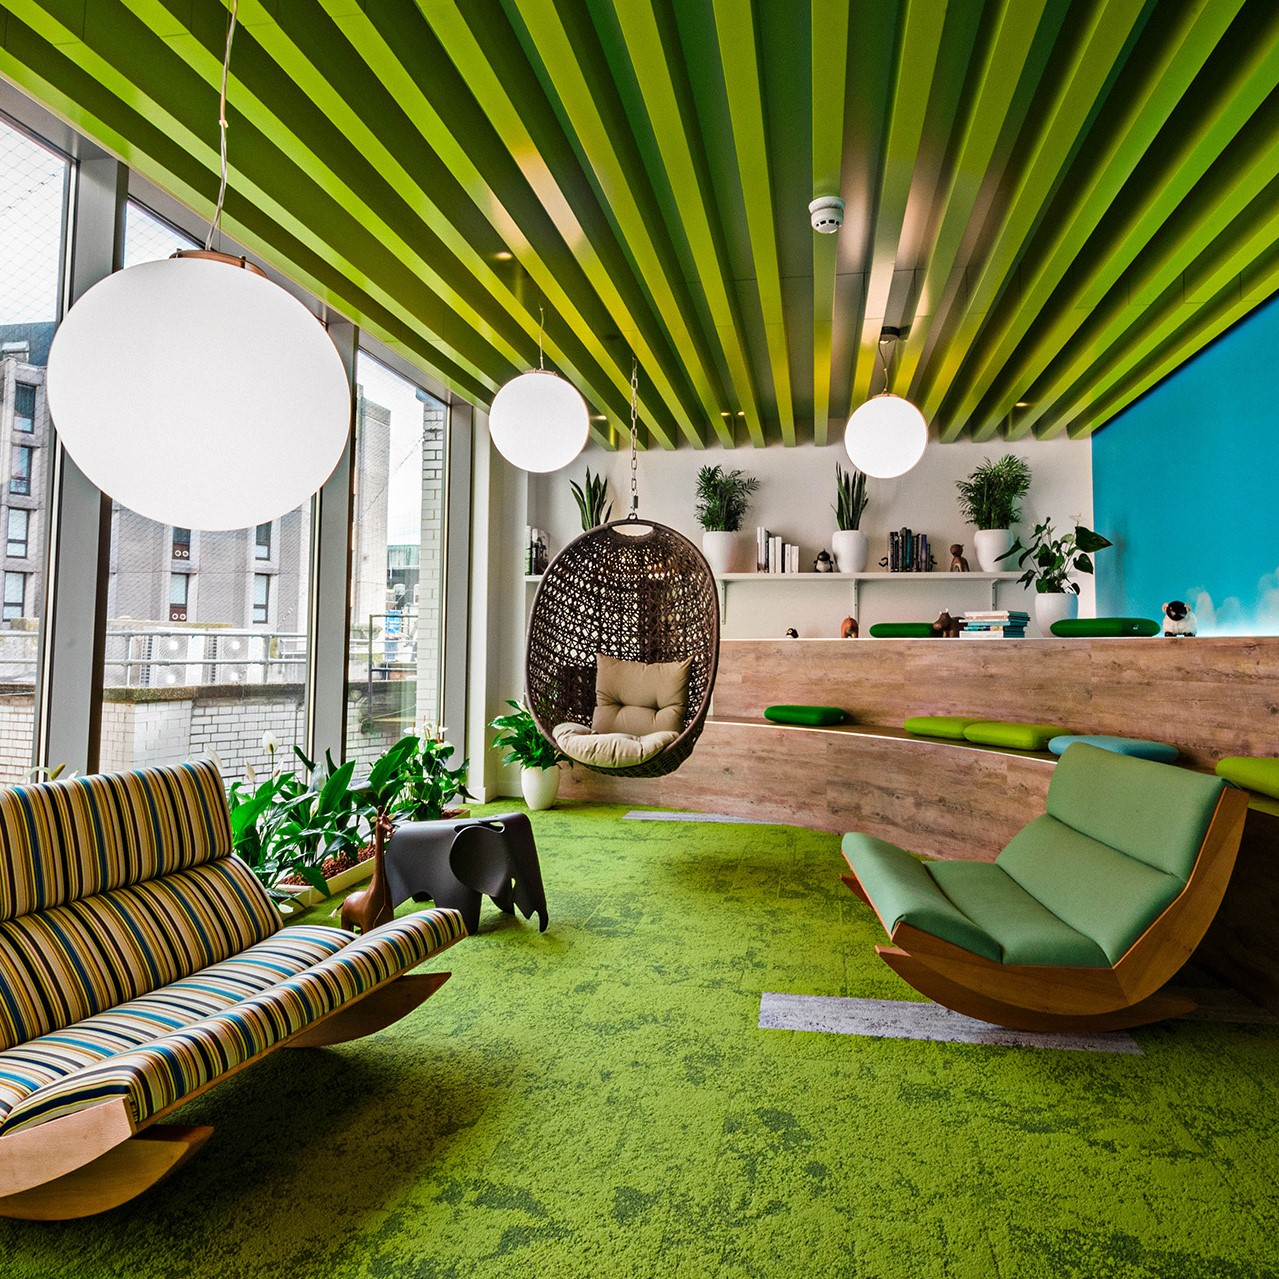 The language barrier to wellbeing in office design